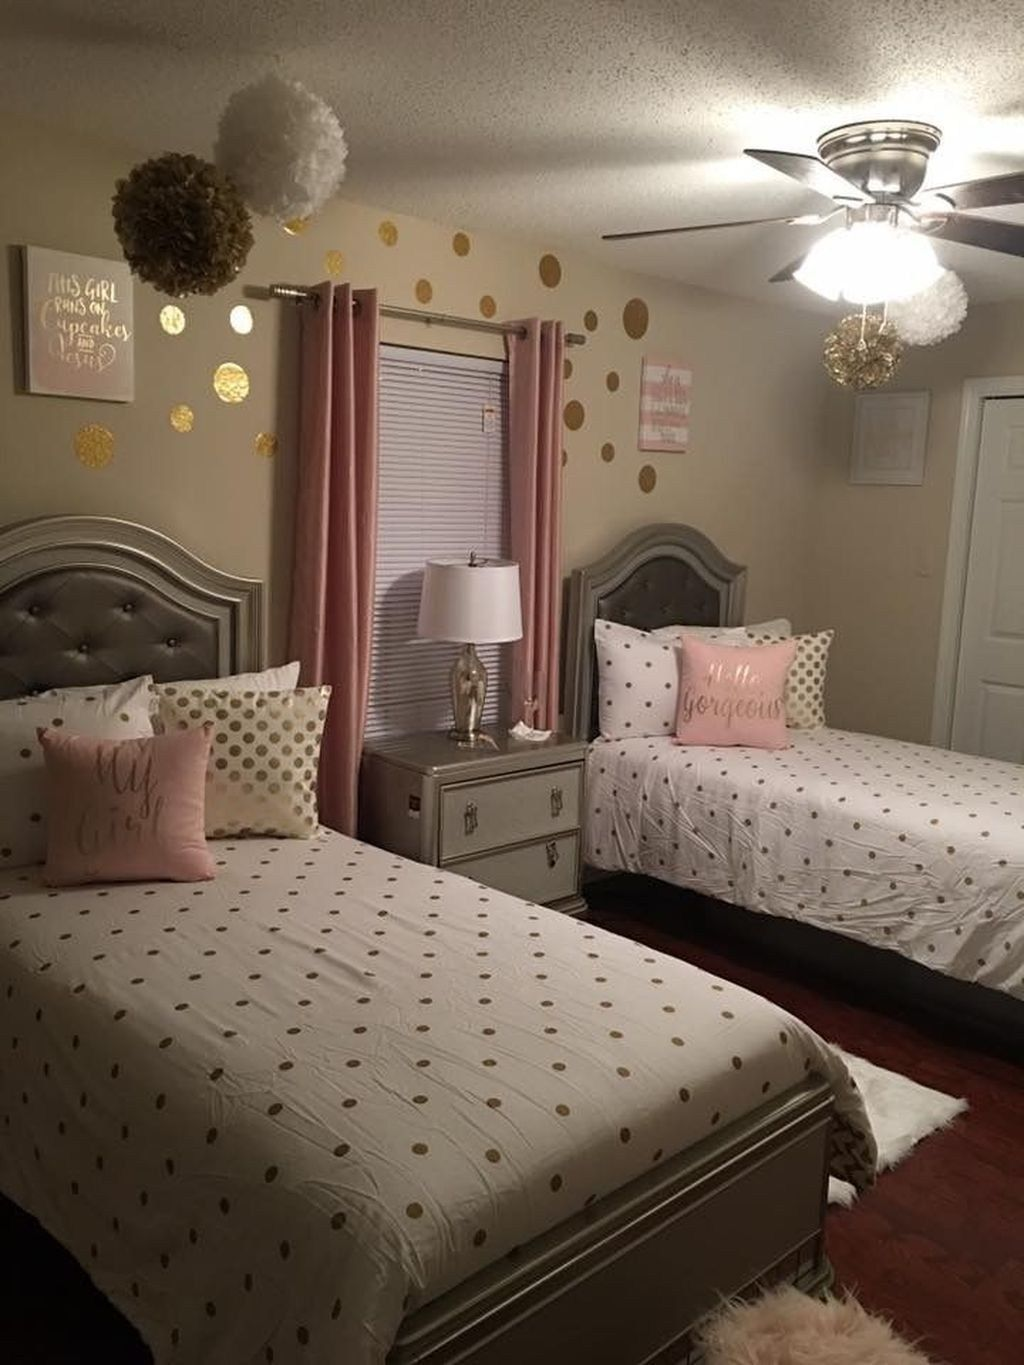 27 Girls Room Decor Ideas To Change The Feel Of The Room Enthusiasthome In 2020 Twin Girl Bedrooms Shared Girls Bedroom Small Room Bedroom